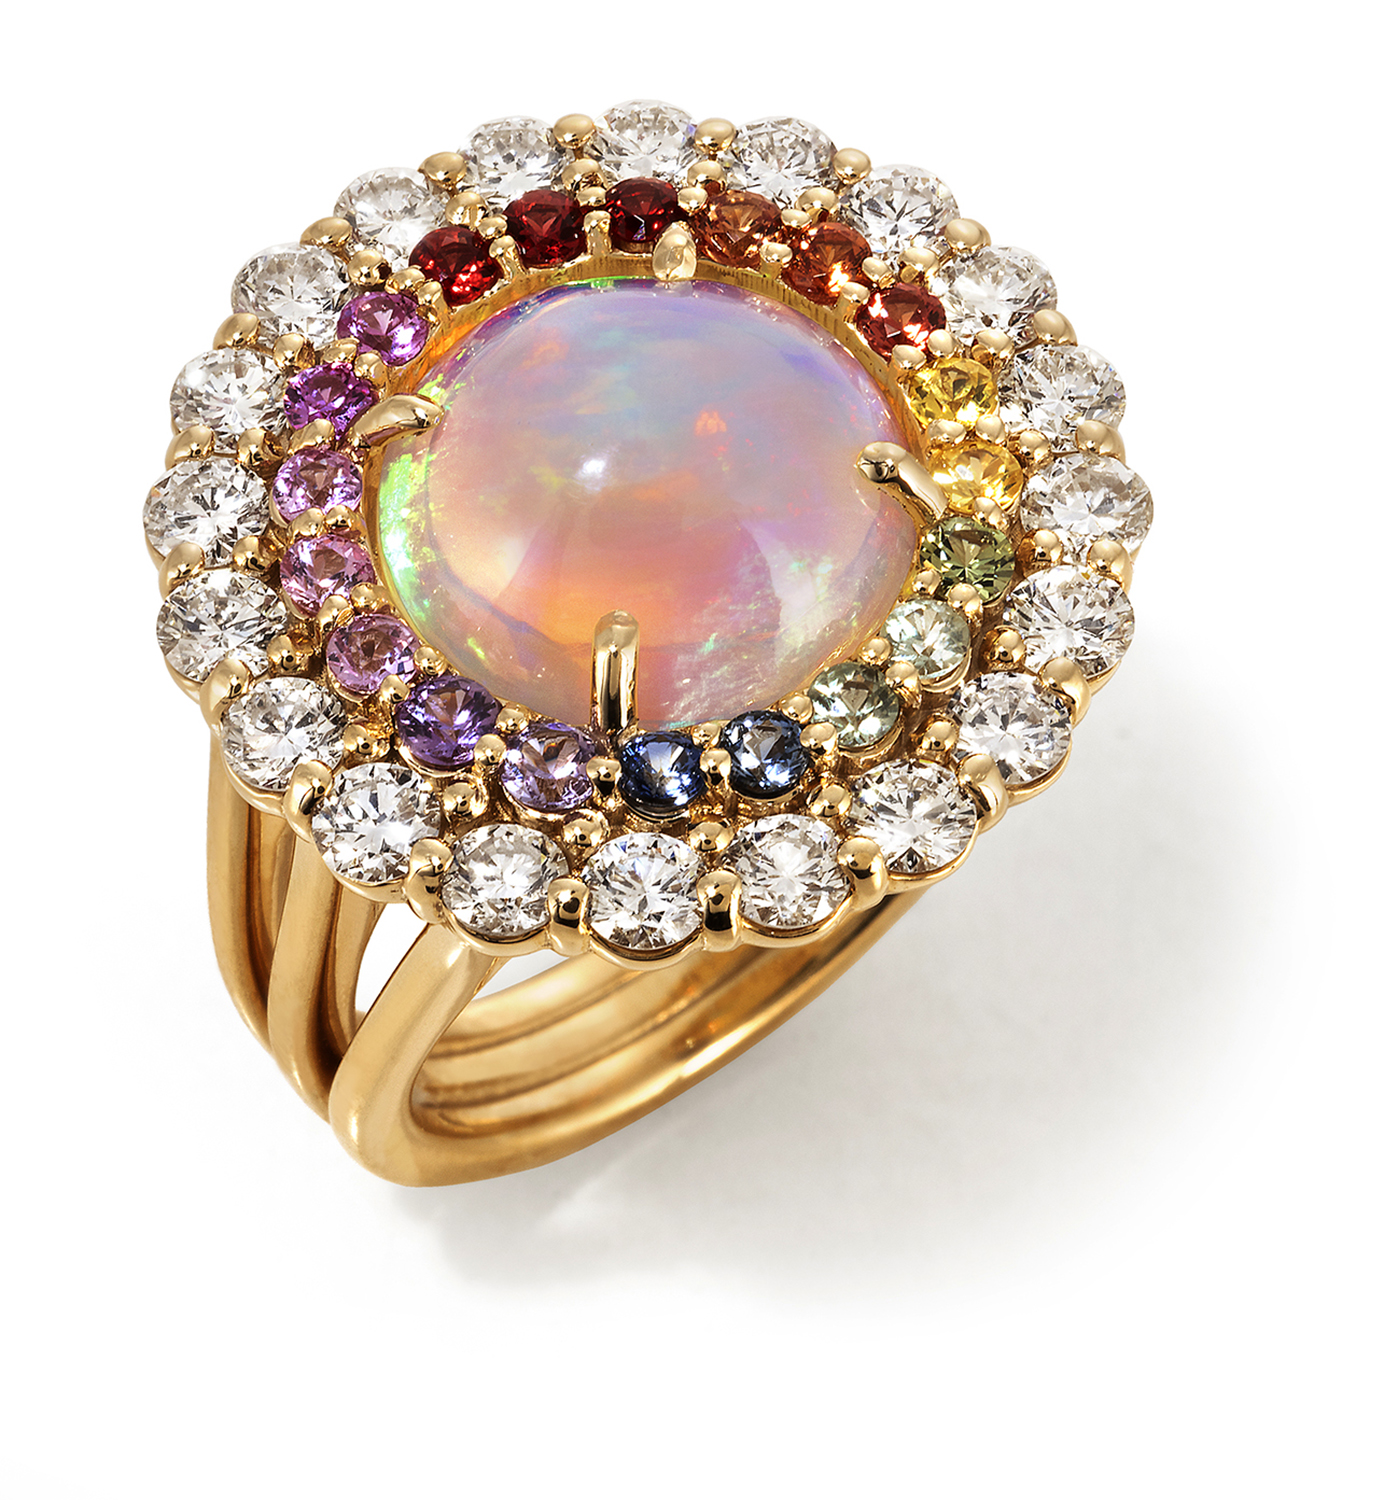 Top view of a three banded gold ring topped with a large reddish opal surrounded by a ring of rainbow colored stones surrounded by a ring of larger diamonds Product Photography